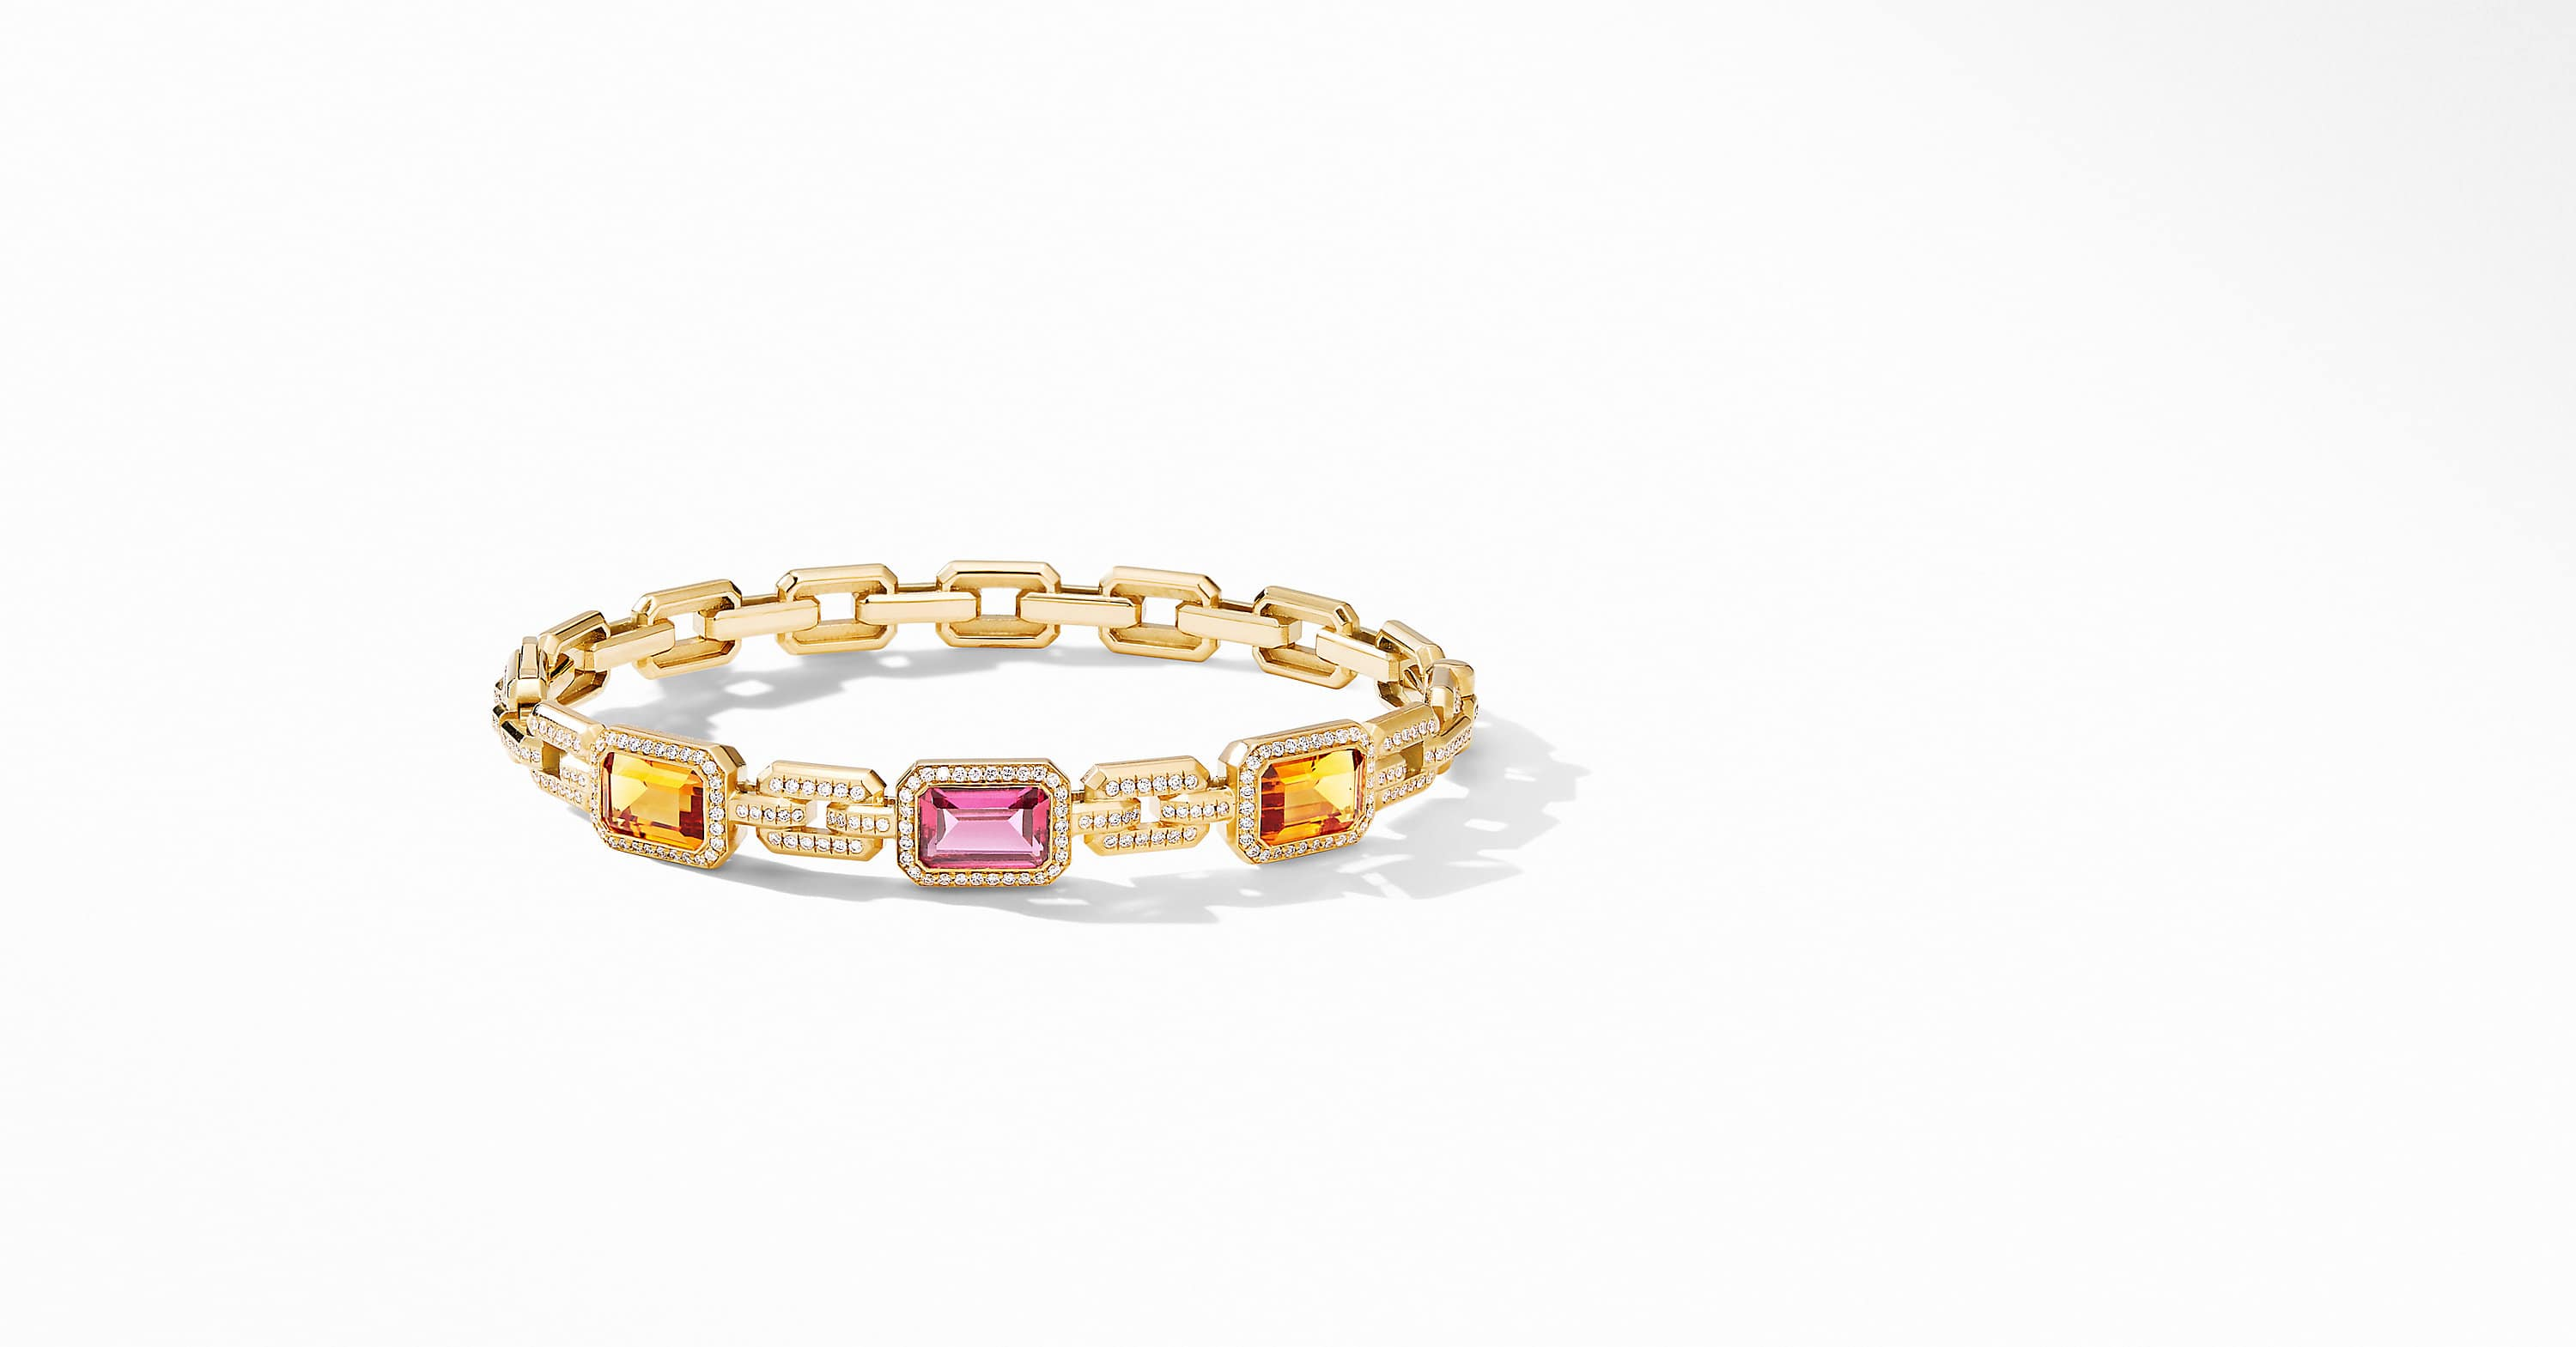 Novella Mosaic Bracelet in 18K Yellow Gold with Diamonds